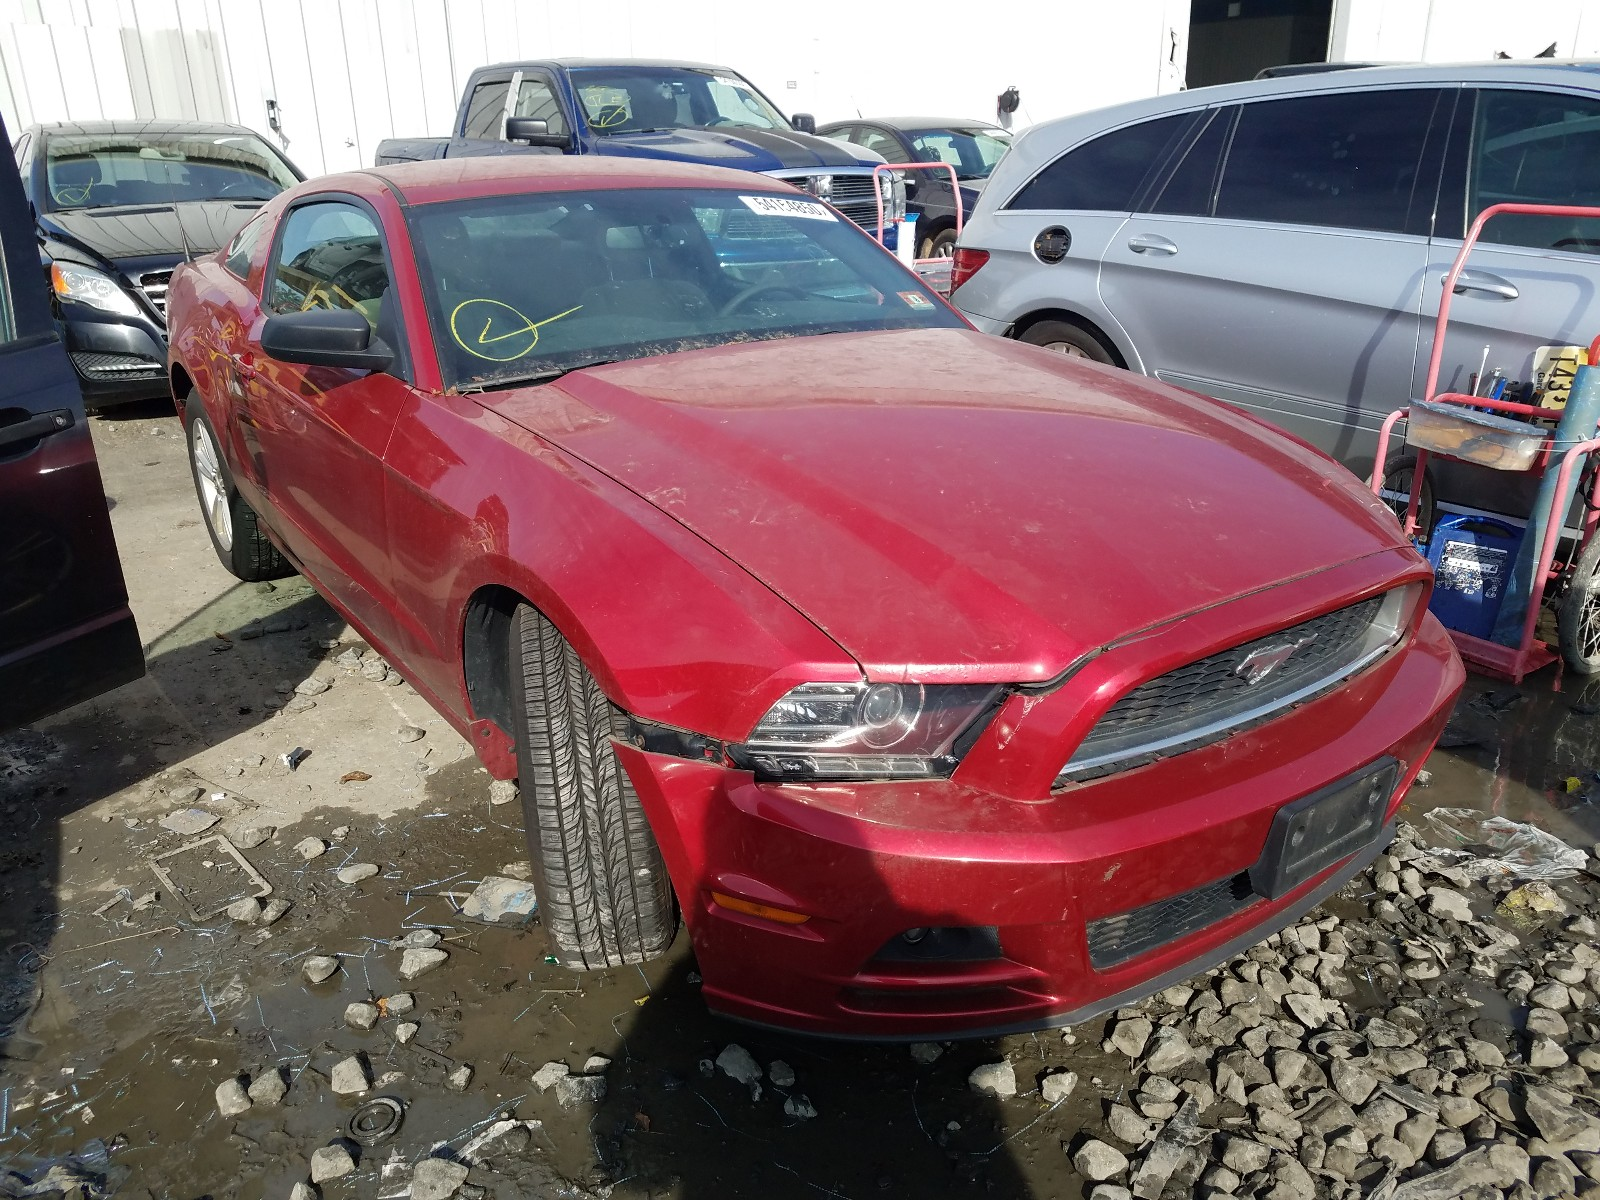 2013 FORD MUSTANG - 1ZVBP8AM4D5280760